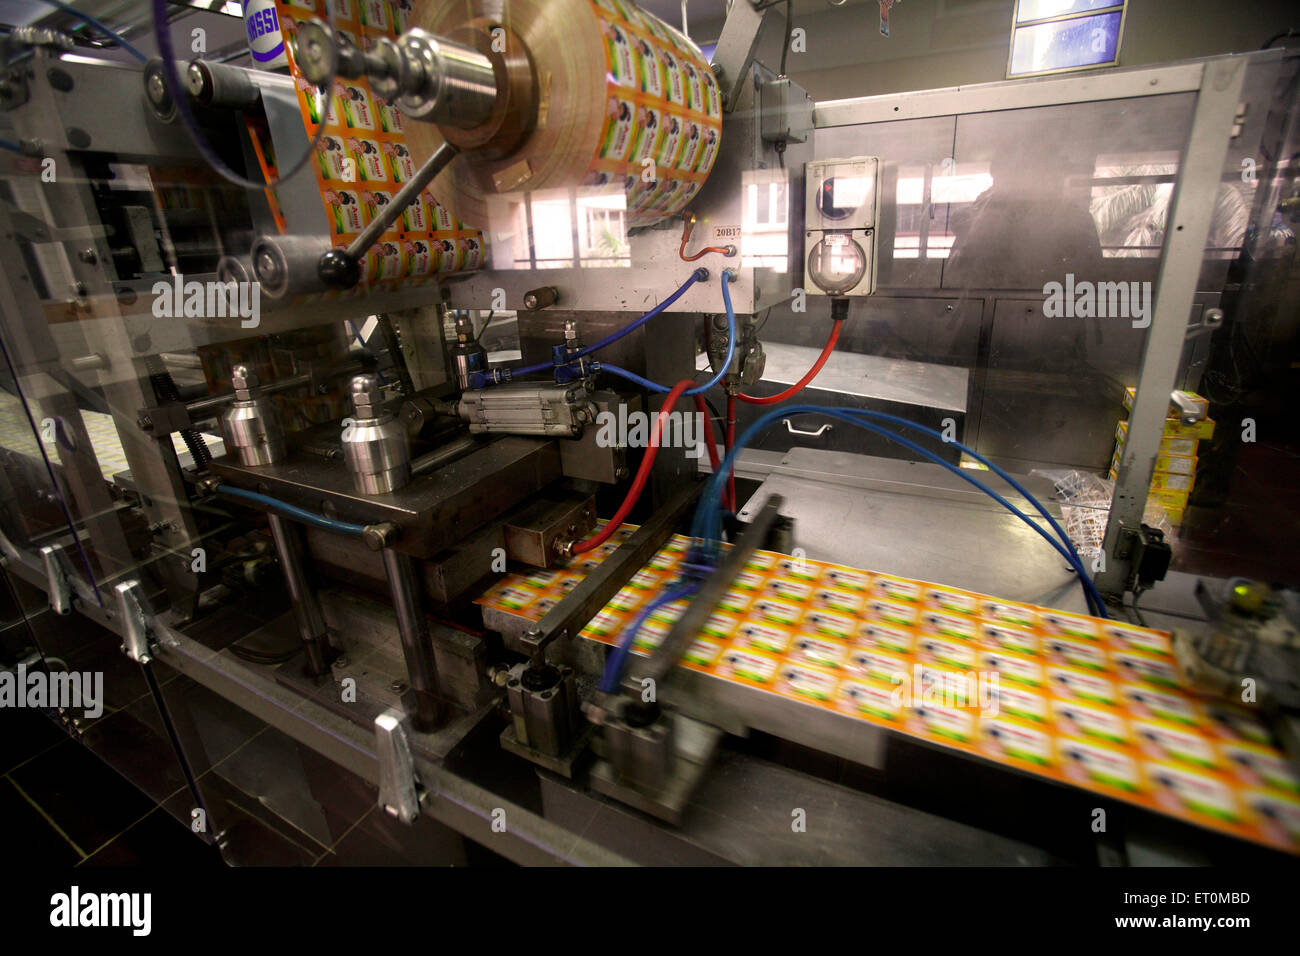 Stickers of Amul butter being printed at workshop in campus of Amul factory in Anand ; Gujarat ; India - Stock Image